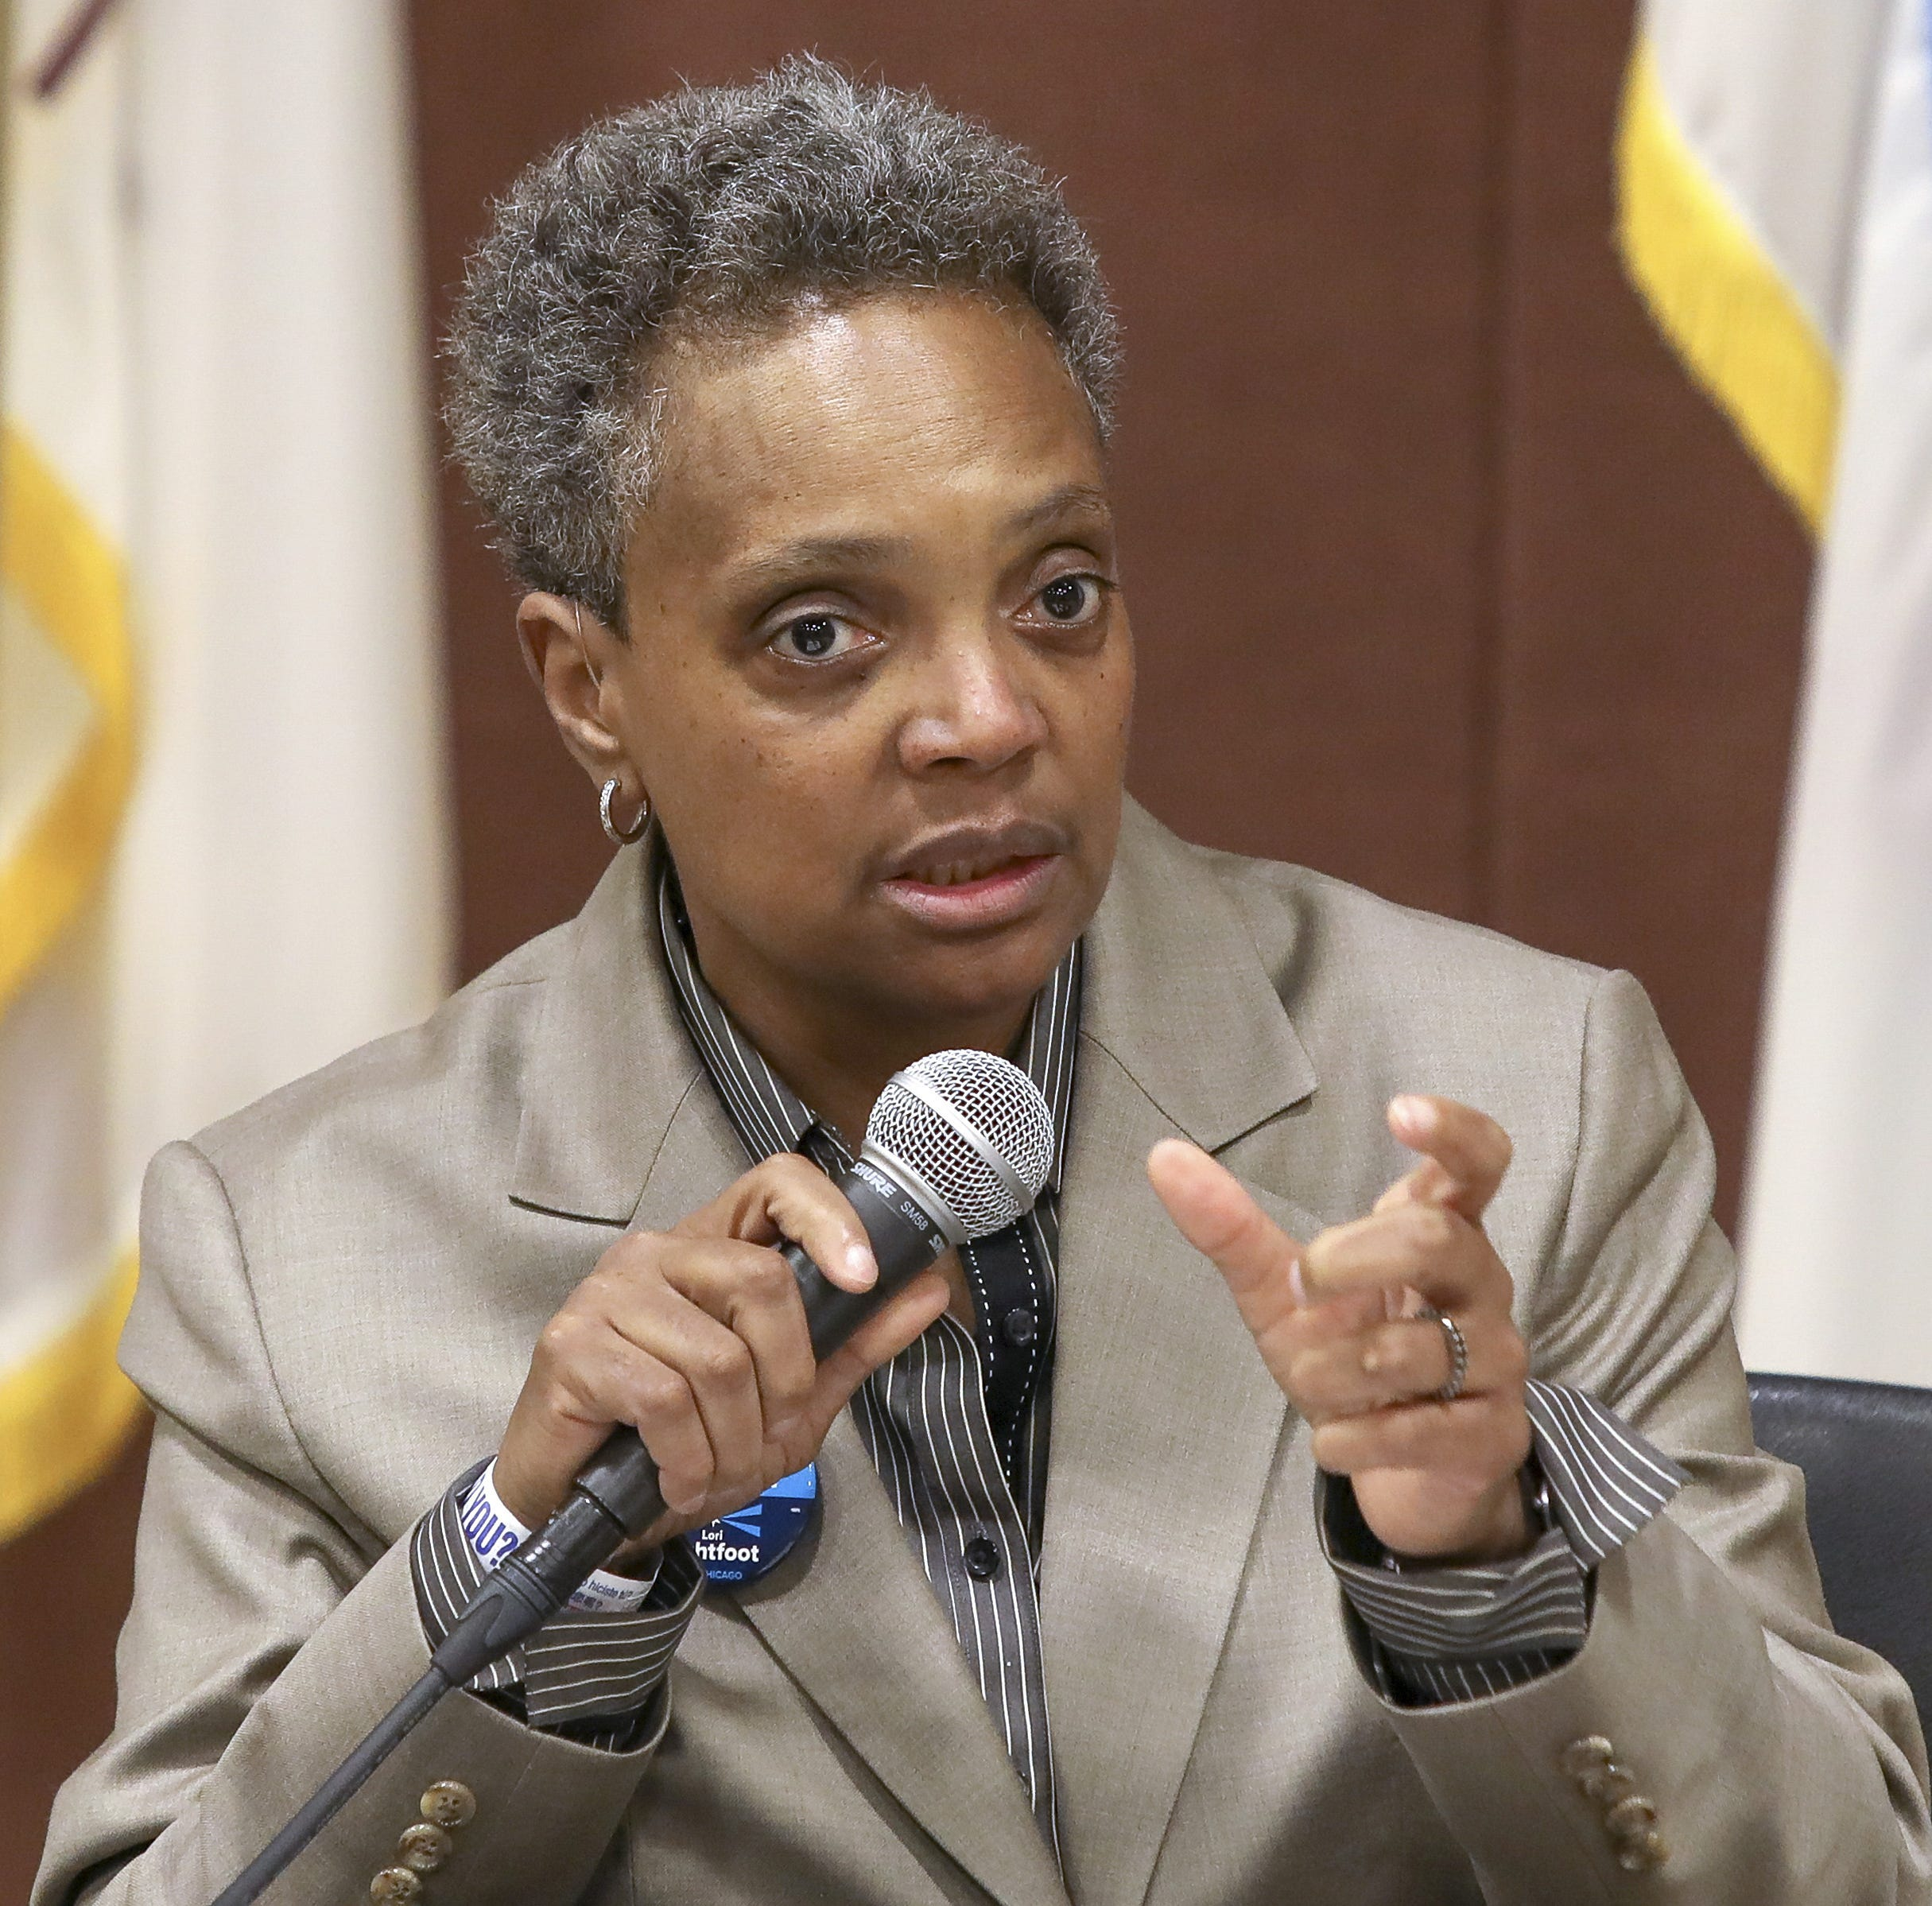 UM alum Lightfoot to be Chicago's 1st black female mayor